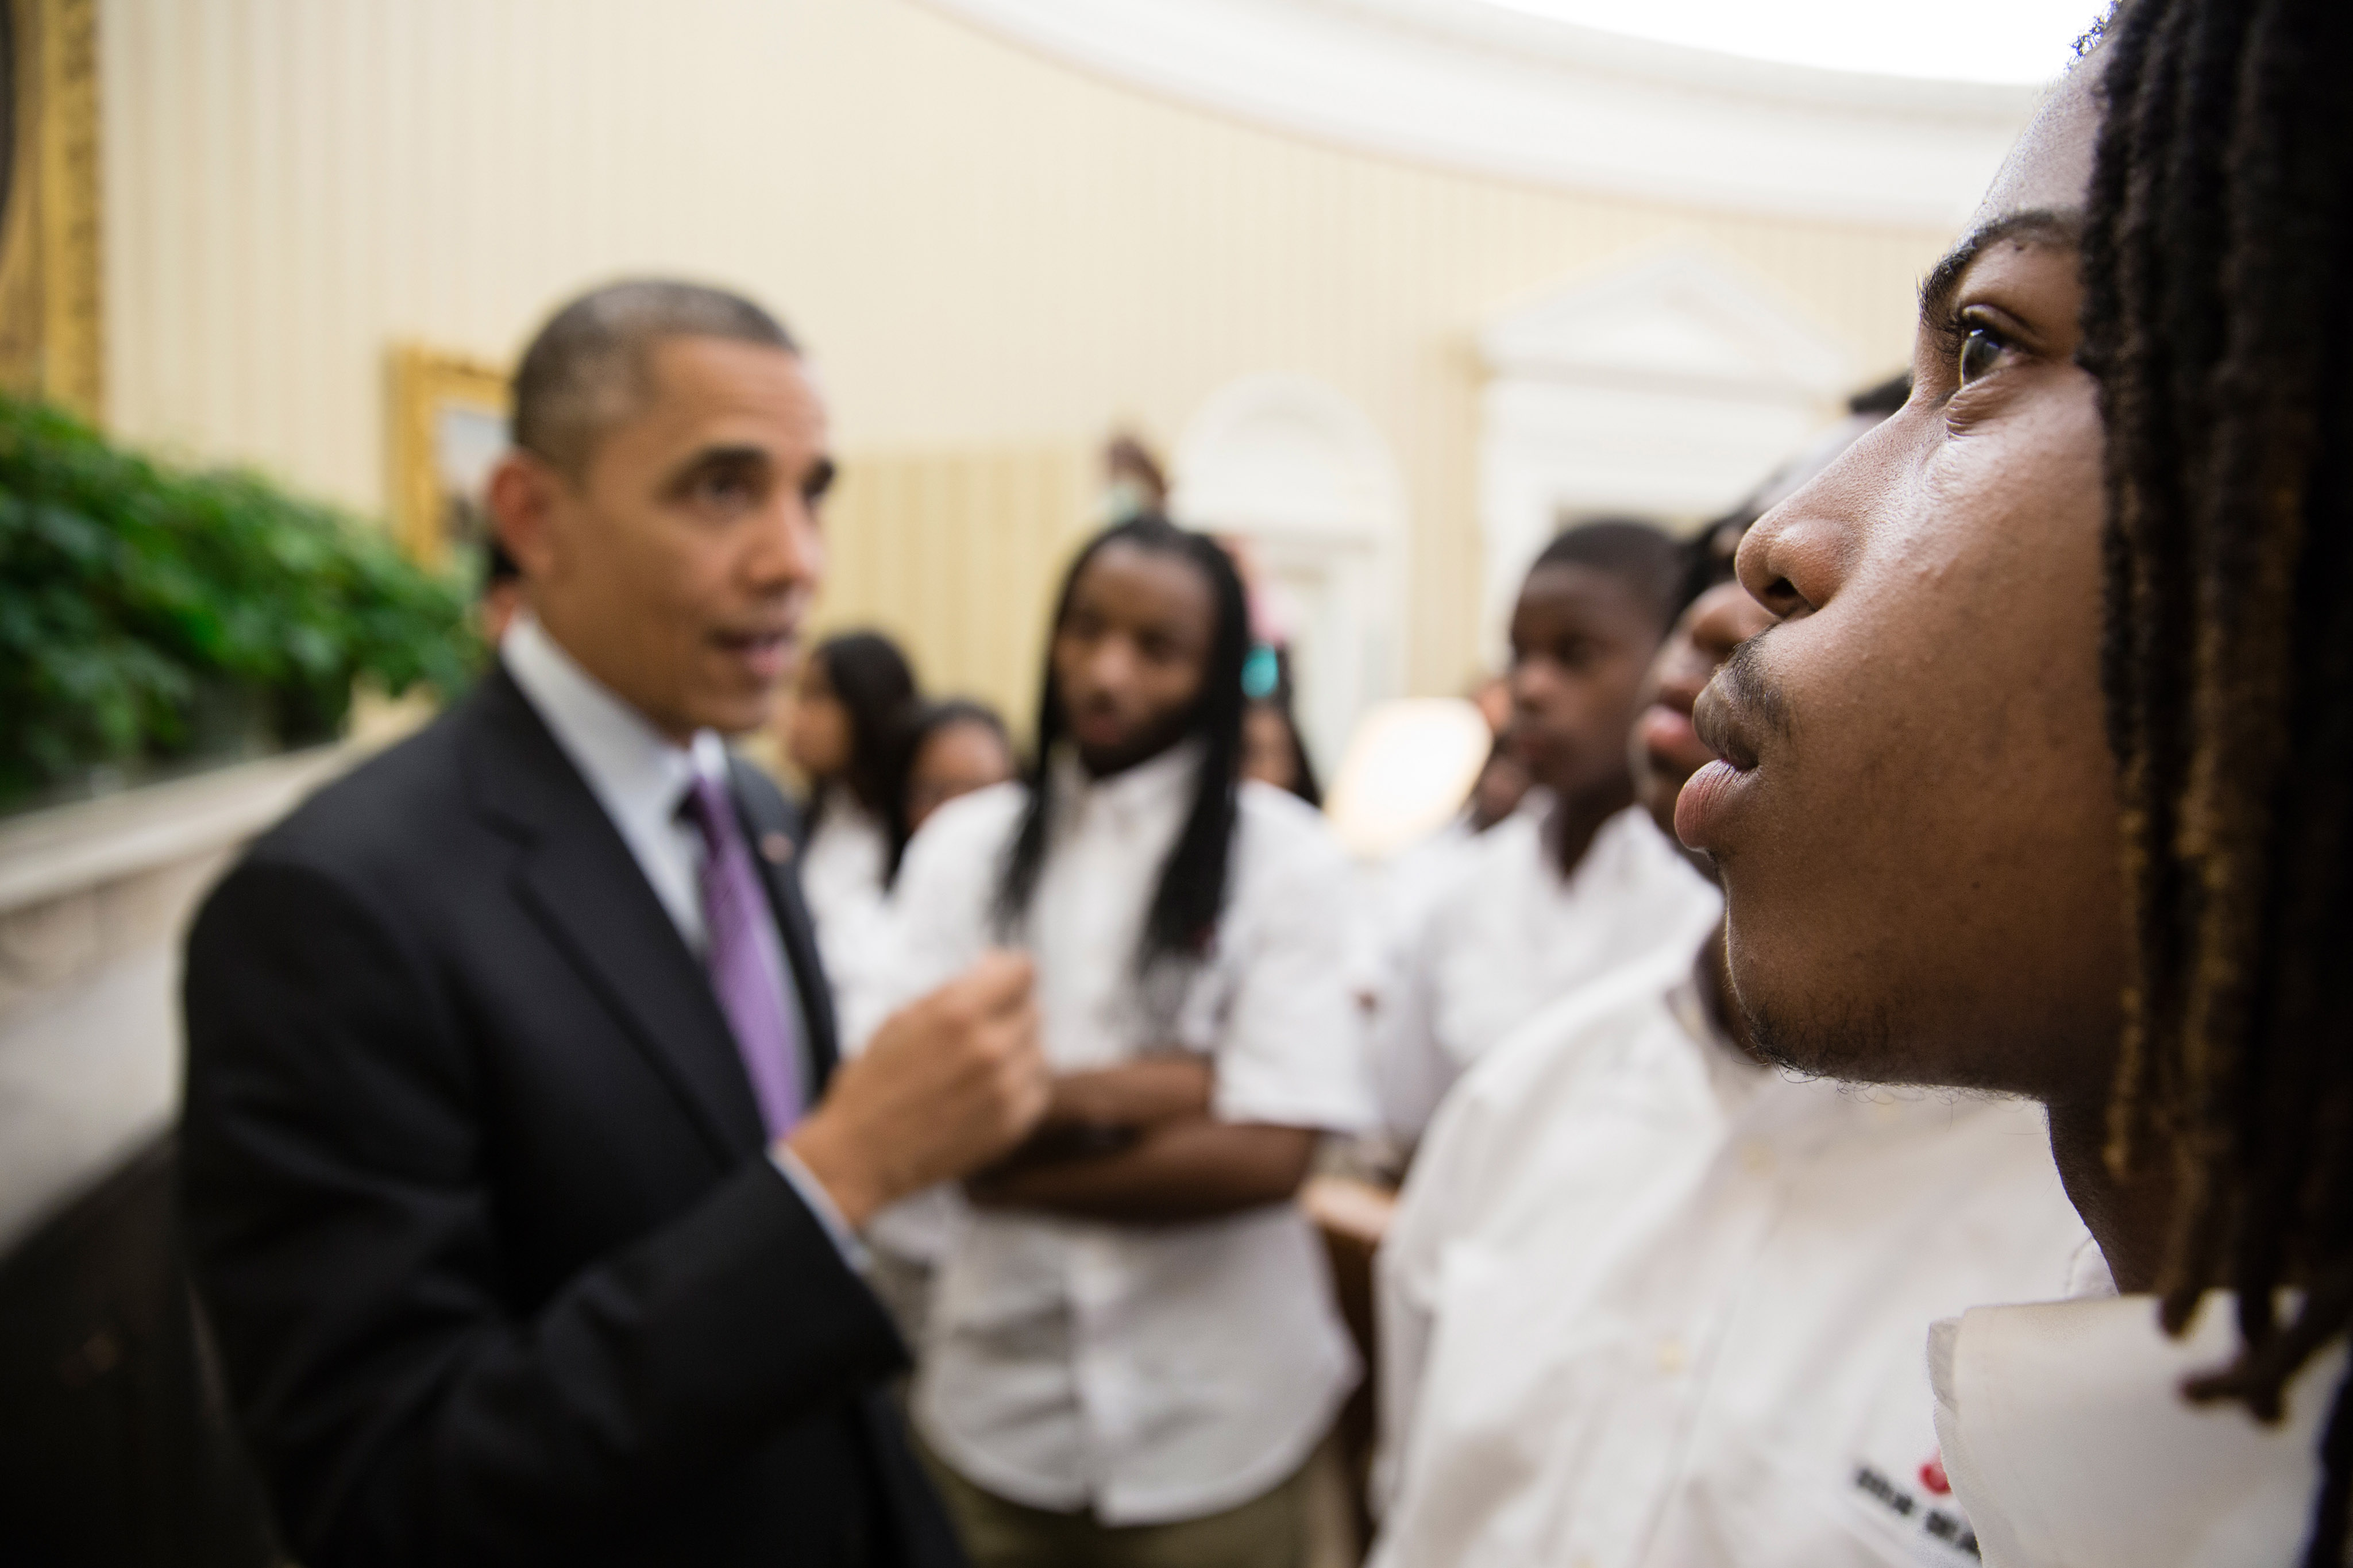 A student eyes the Emancipation Proclamation as the President gave students from William R. Harper High School in Chicago a tour of the Oval Office.